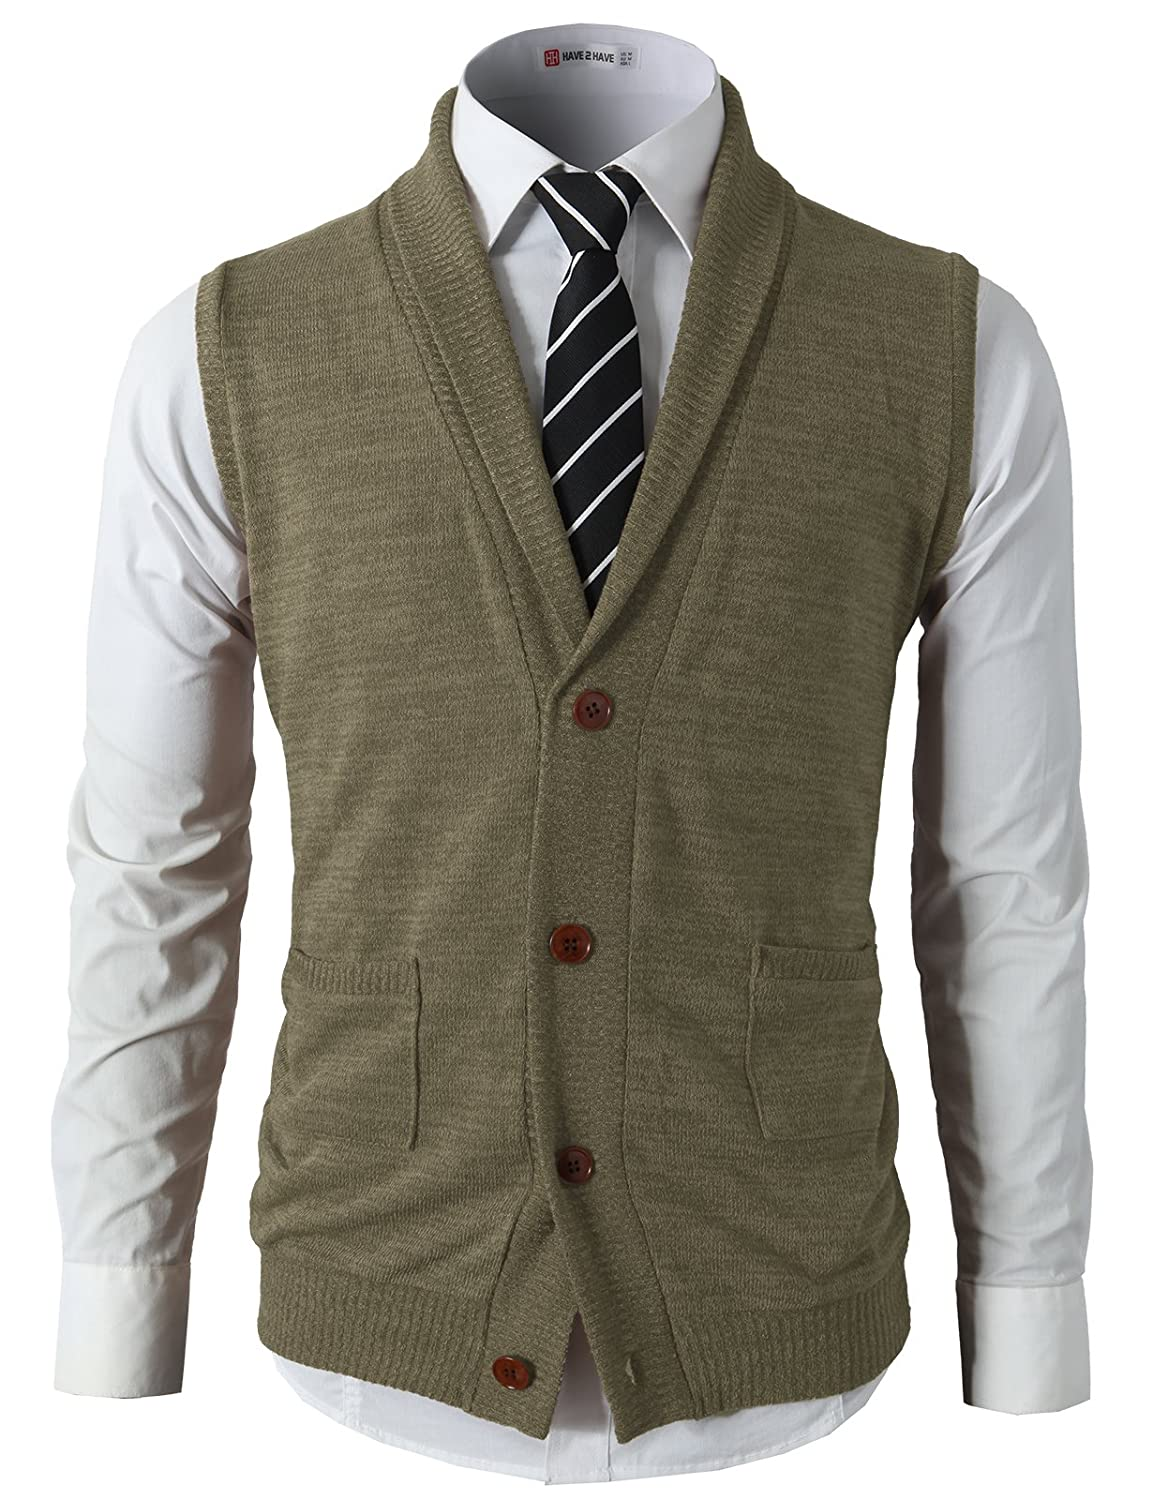 H2H Mens Casual Slim Fit Kniited Sweater Vests V-Neck Button-Down Shawl Collar with Pockets